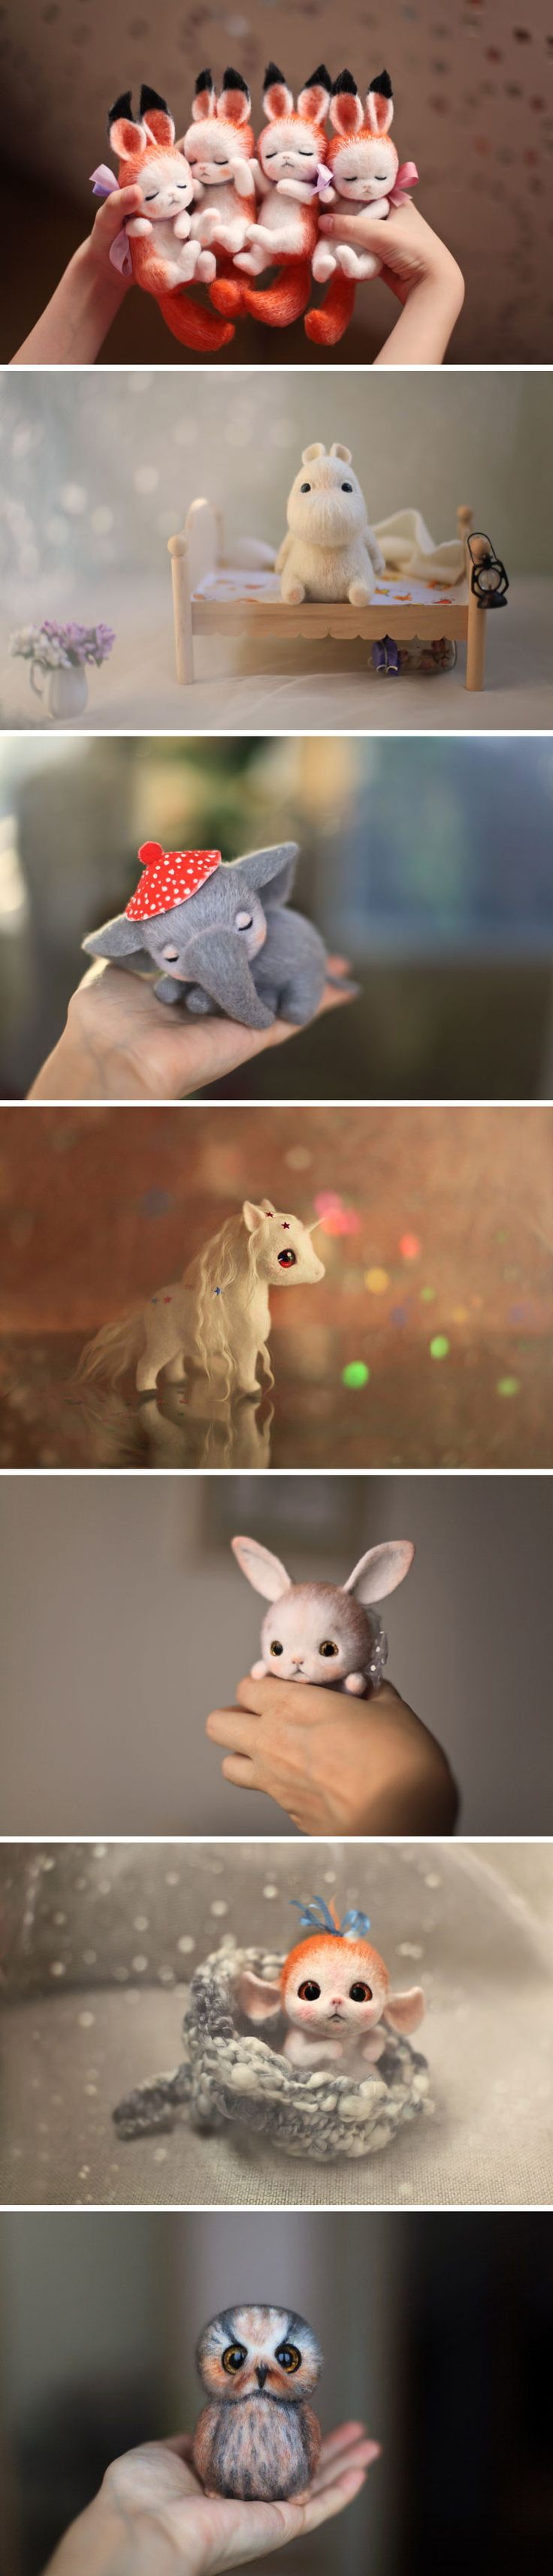 needle felted toys by Russian artist Nadezhda Micheeva